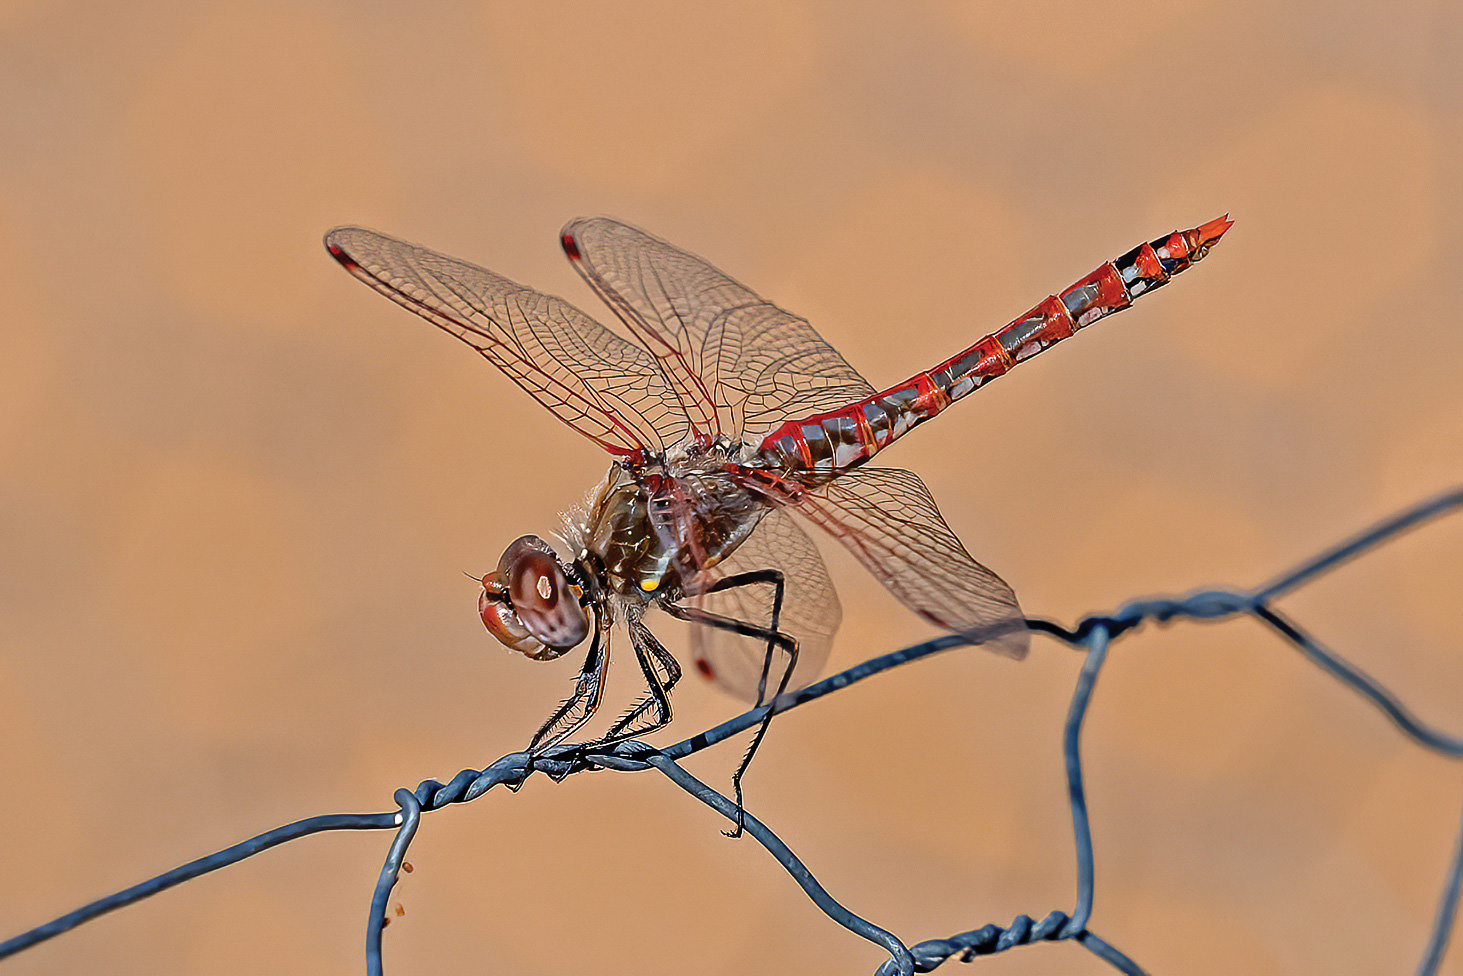 John Tubbs took second place with his photo Variegated Meadowhawk Dragonfly.